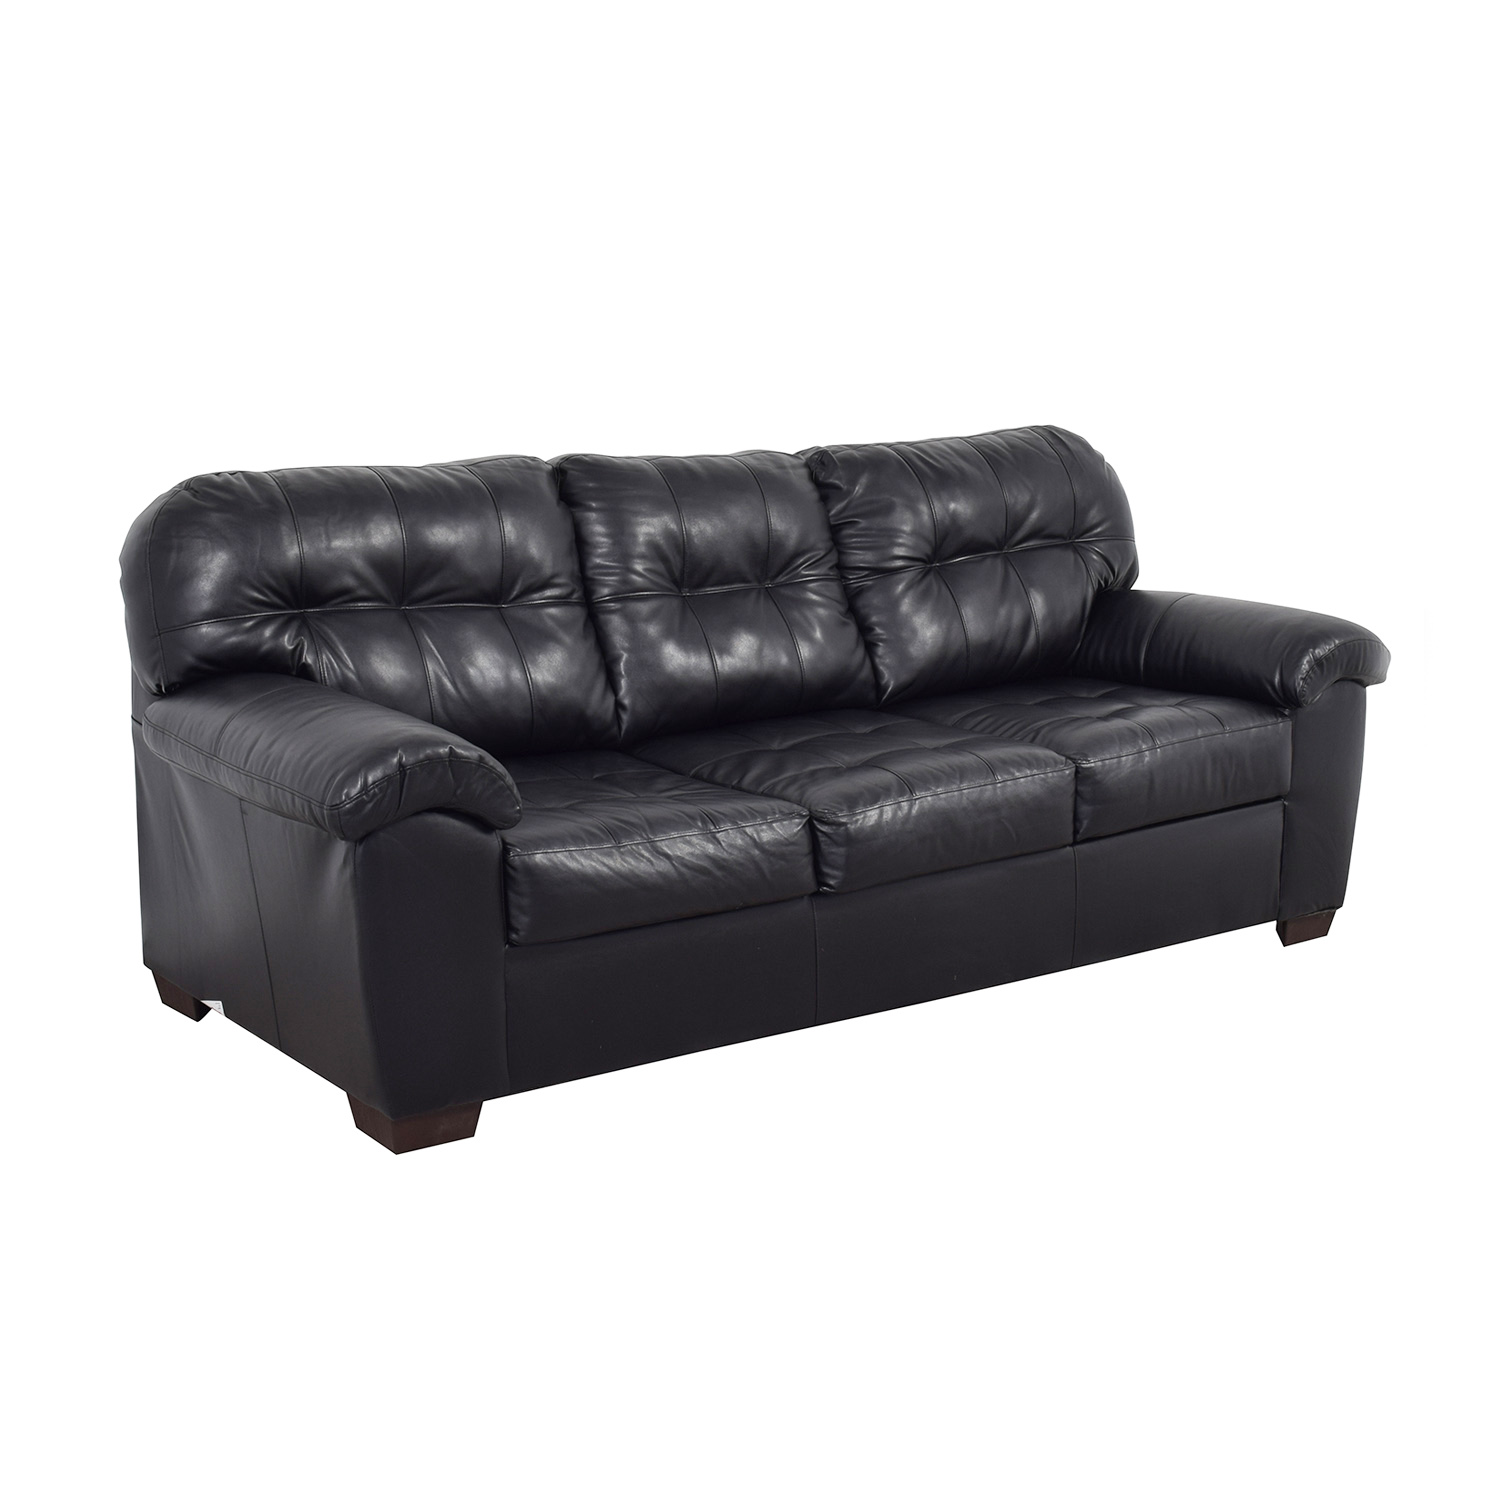 Black Tufted Leather Three Cushion Couch